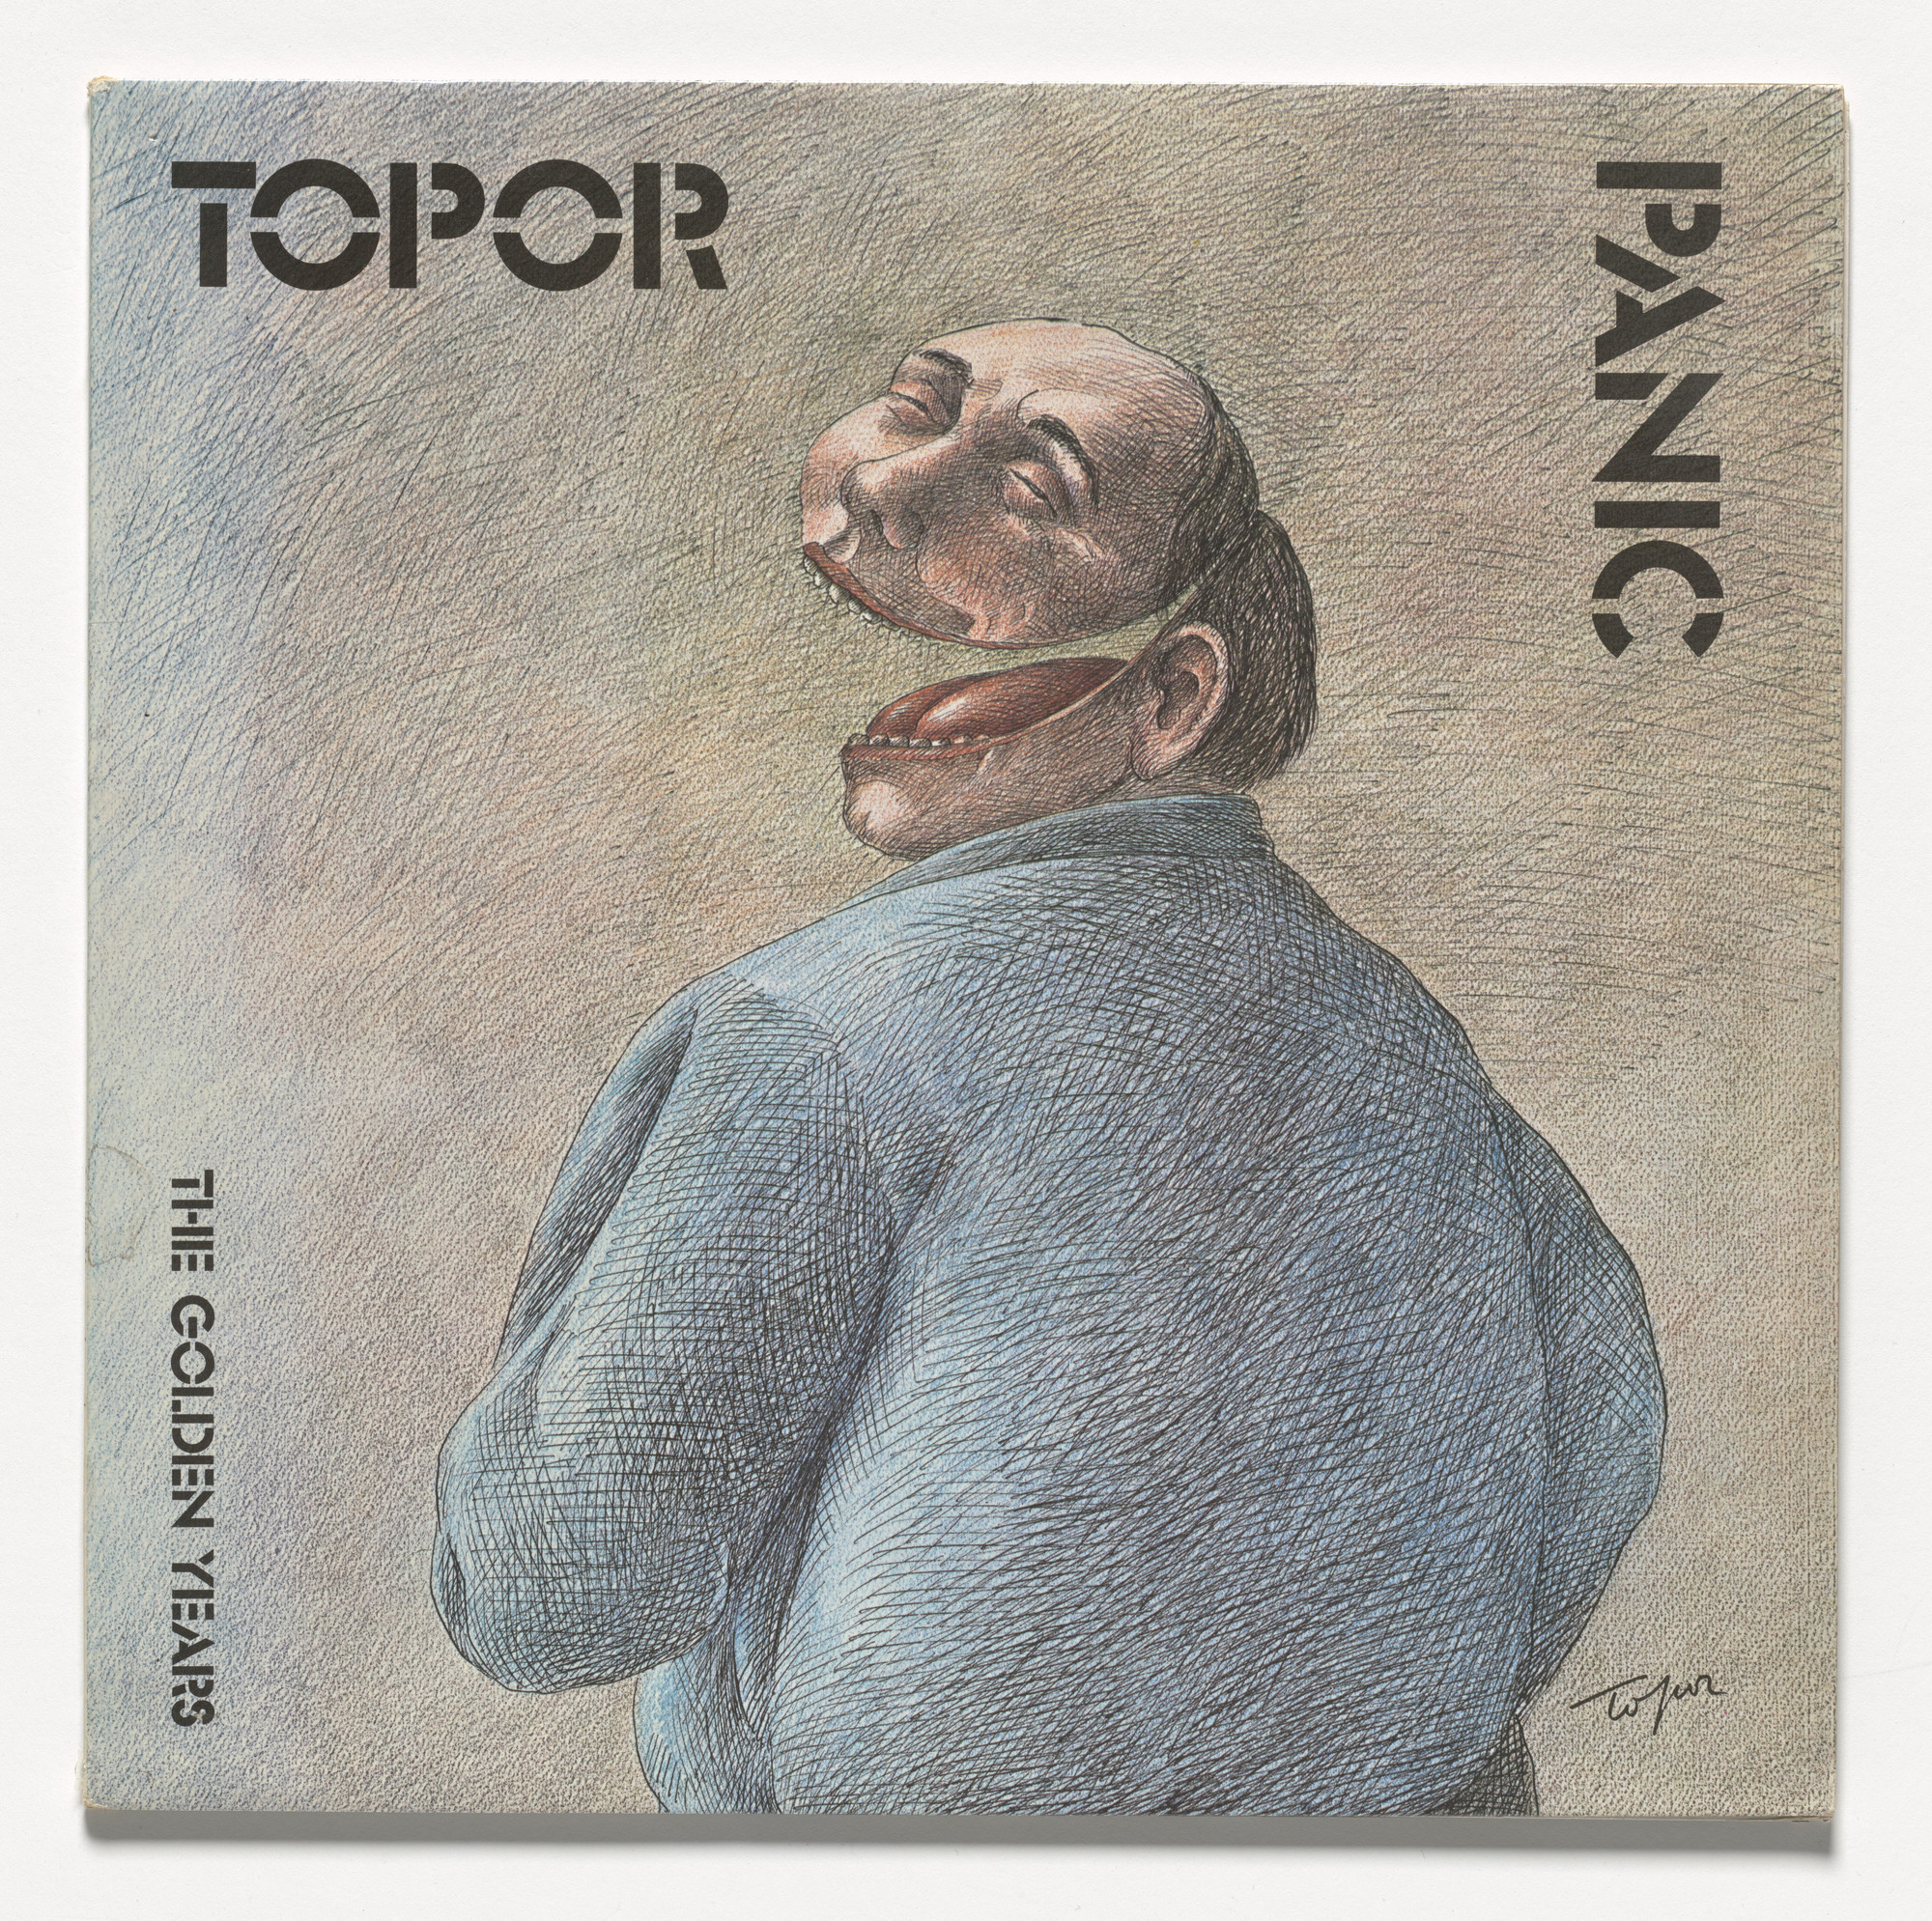 Roland Topor. Panic (The Golden Years). 1975